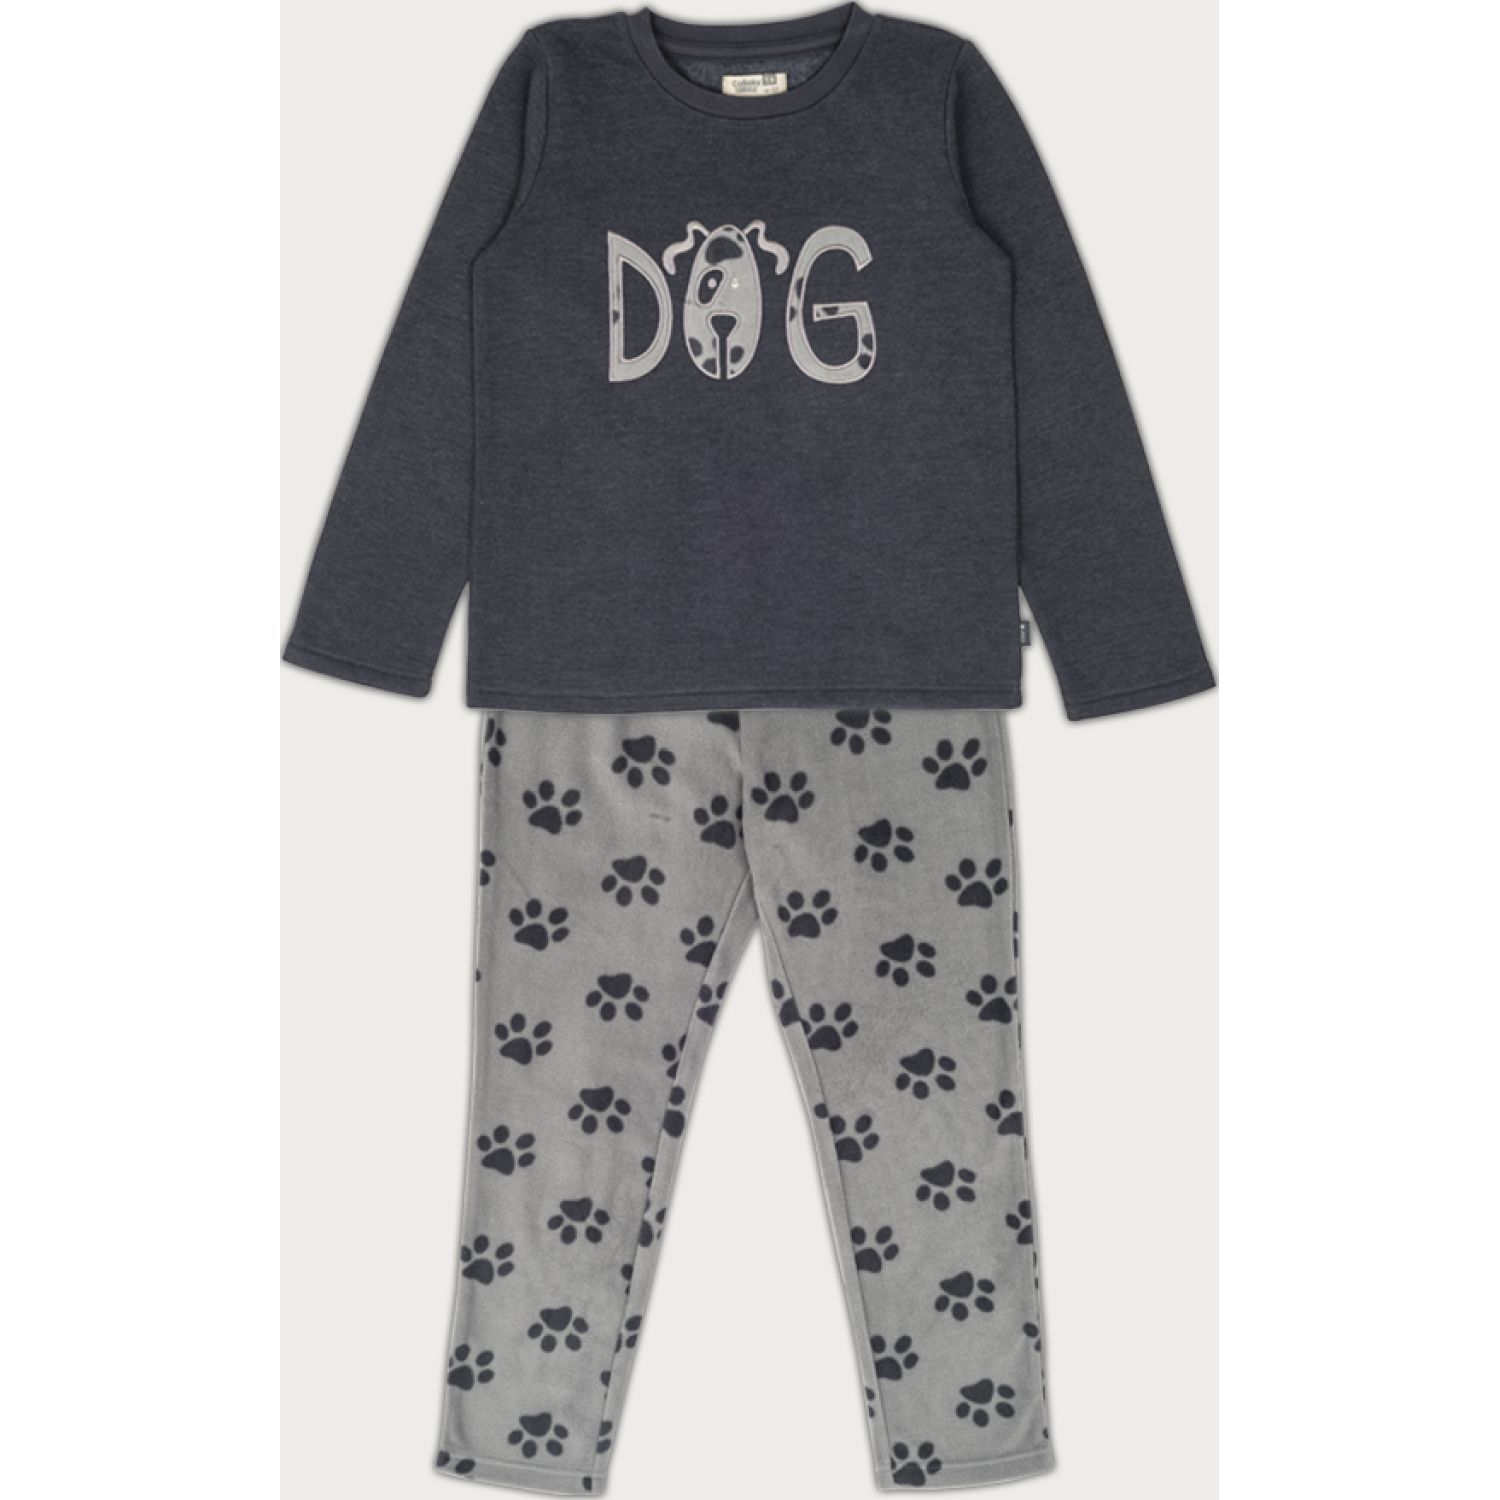 Colloky PIJAMA KID BOY DOG PJPF0711 Gris Sets de Pijama